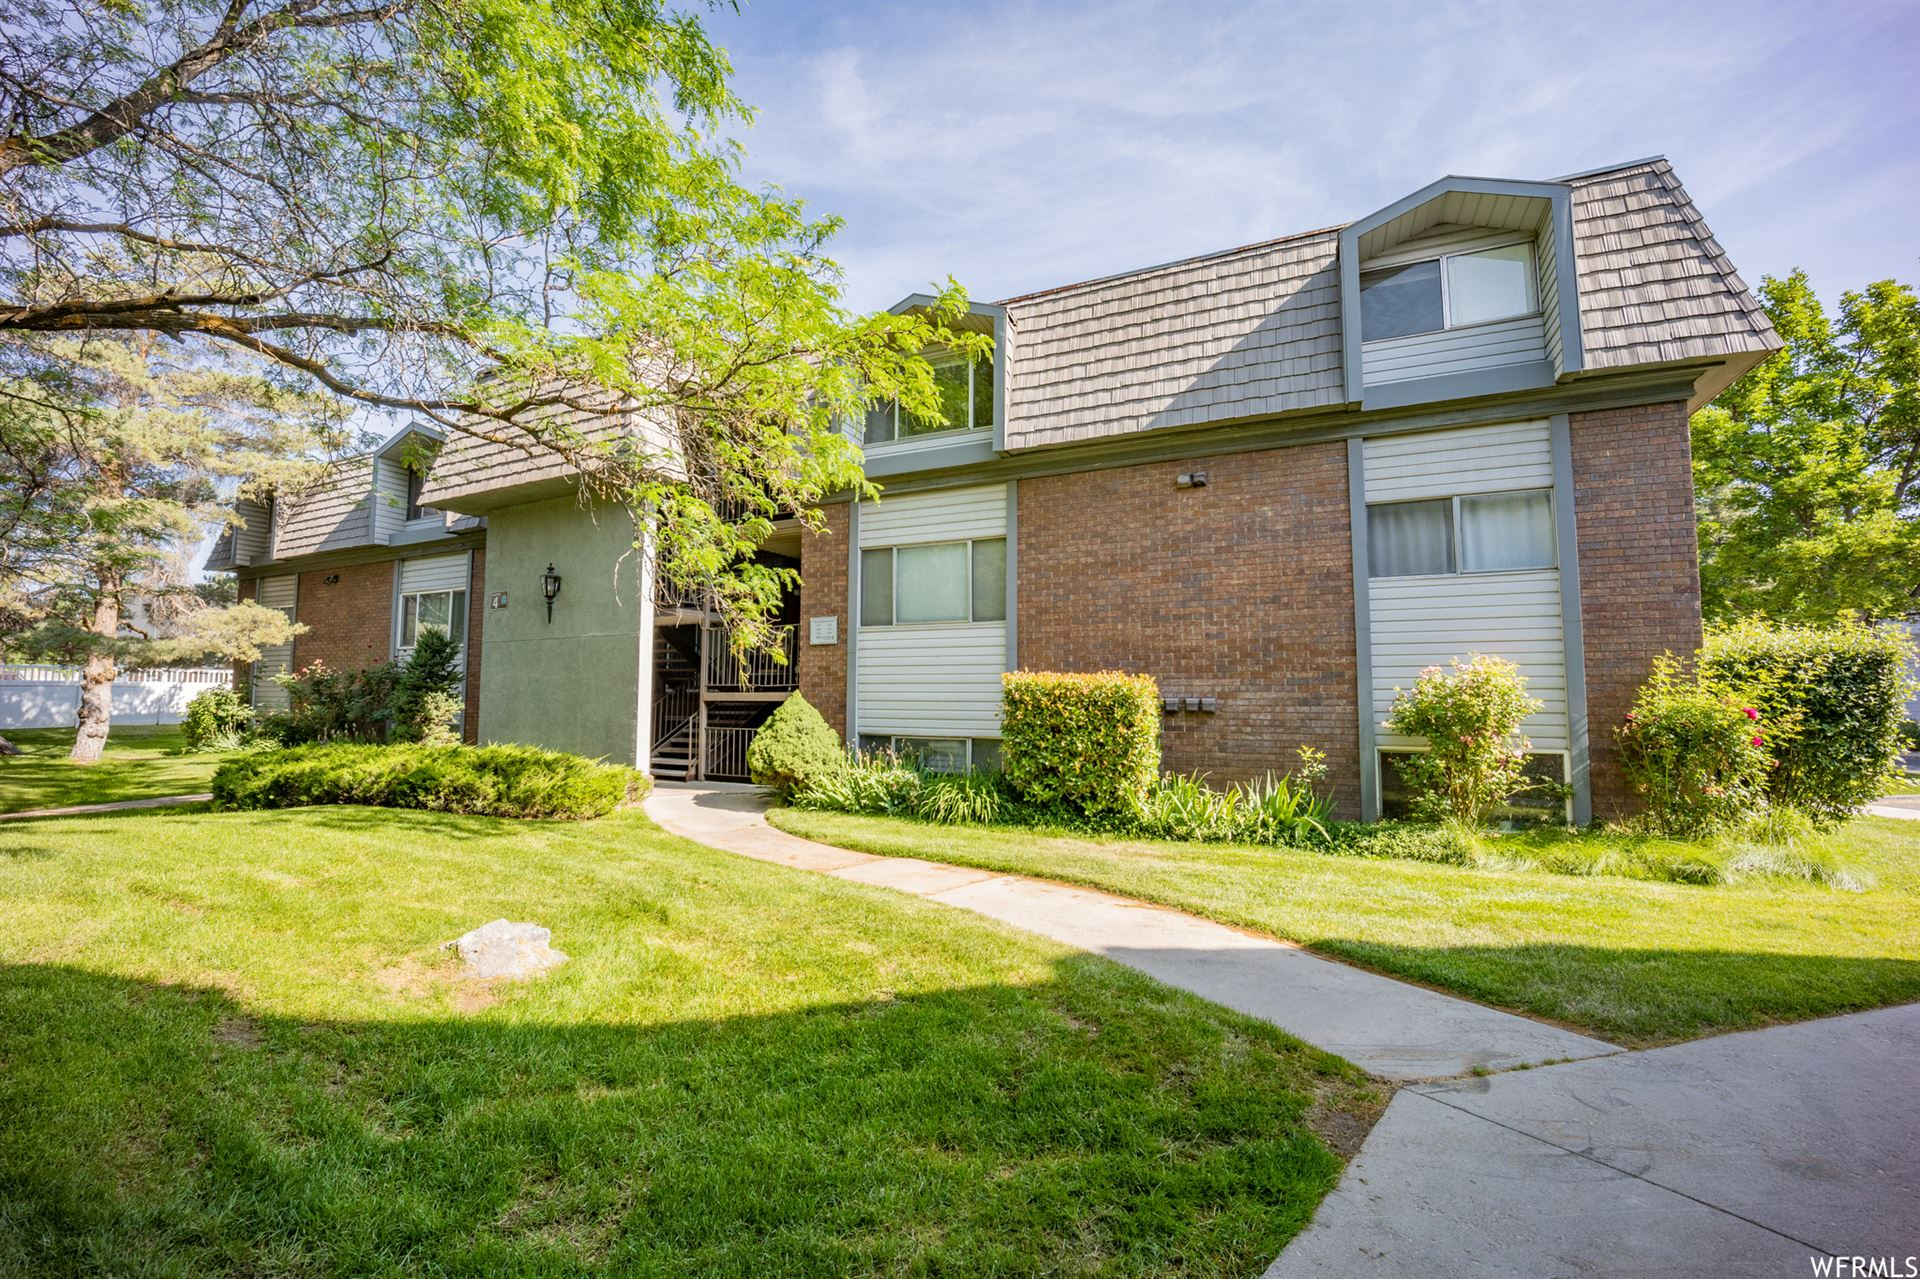 Photo of 1768 WILLOWBROOK DR, Provo, UT 84604 (MLS # 1749580)